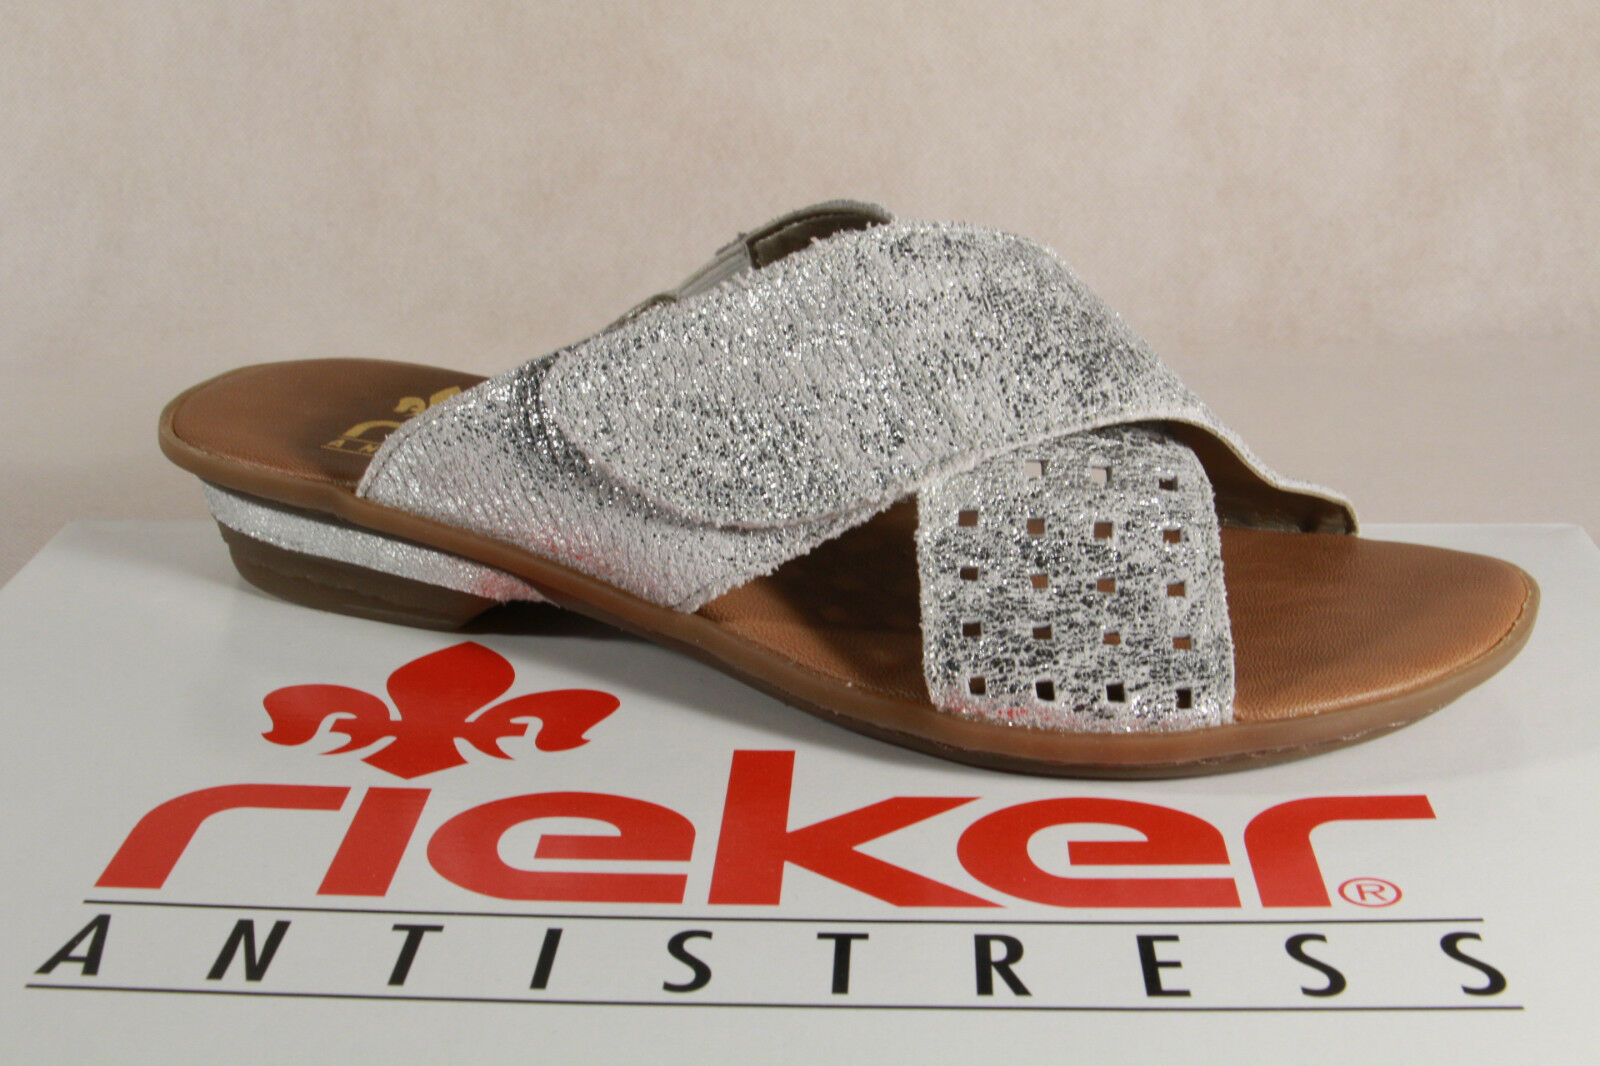 Rieker Mules, Real Mules Silver Touch Fastener Real Mules, Leather 63495 NEW fce4de